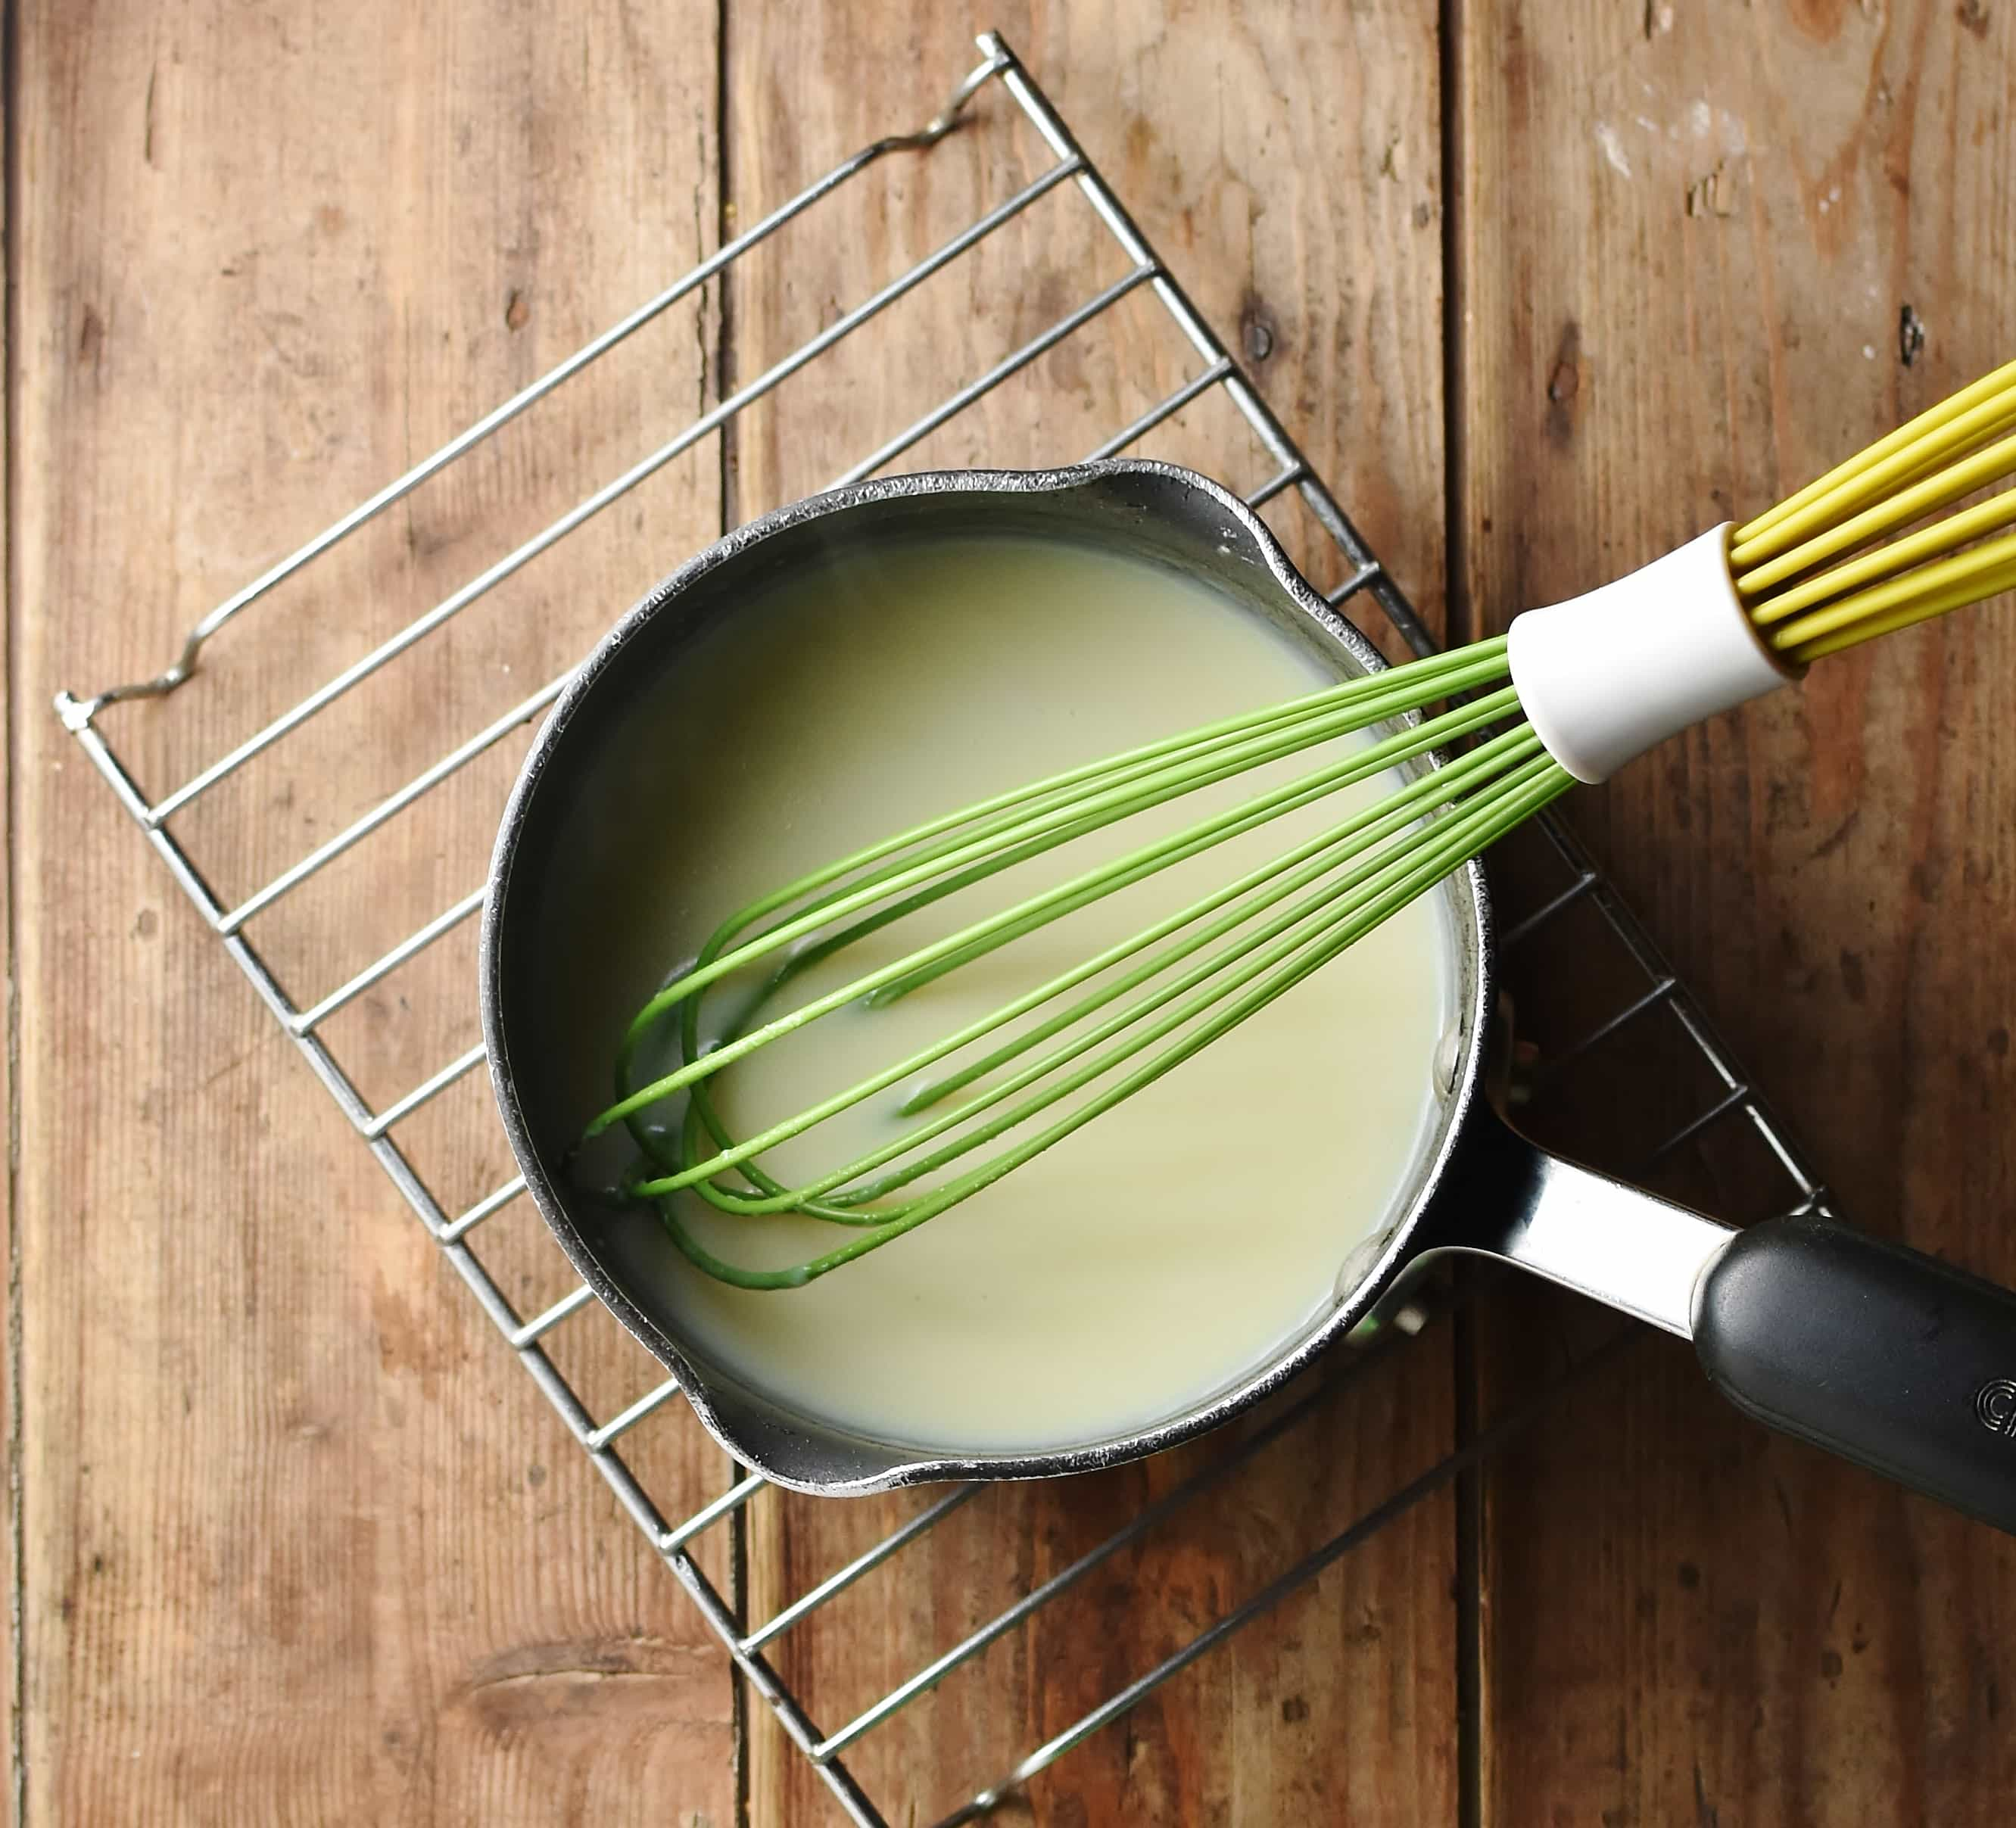 White sauce with green whisk in saucepan on top of rack.